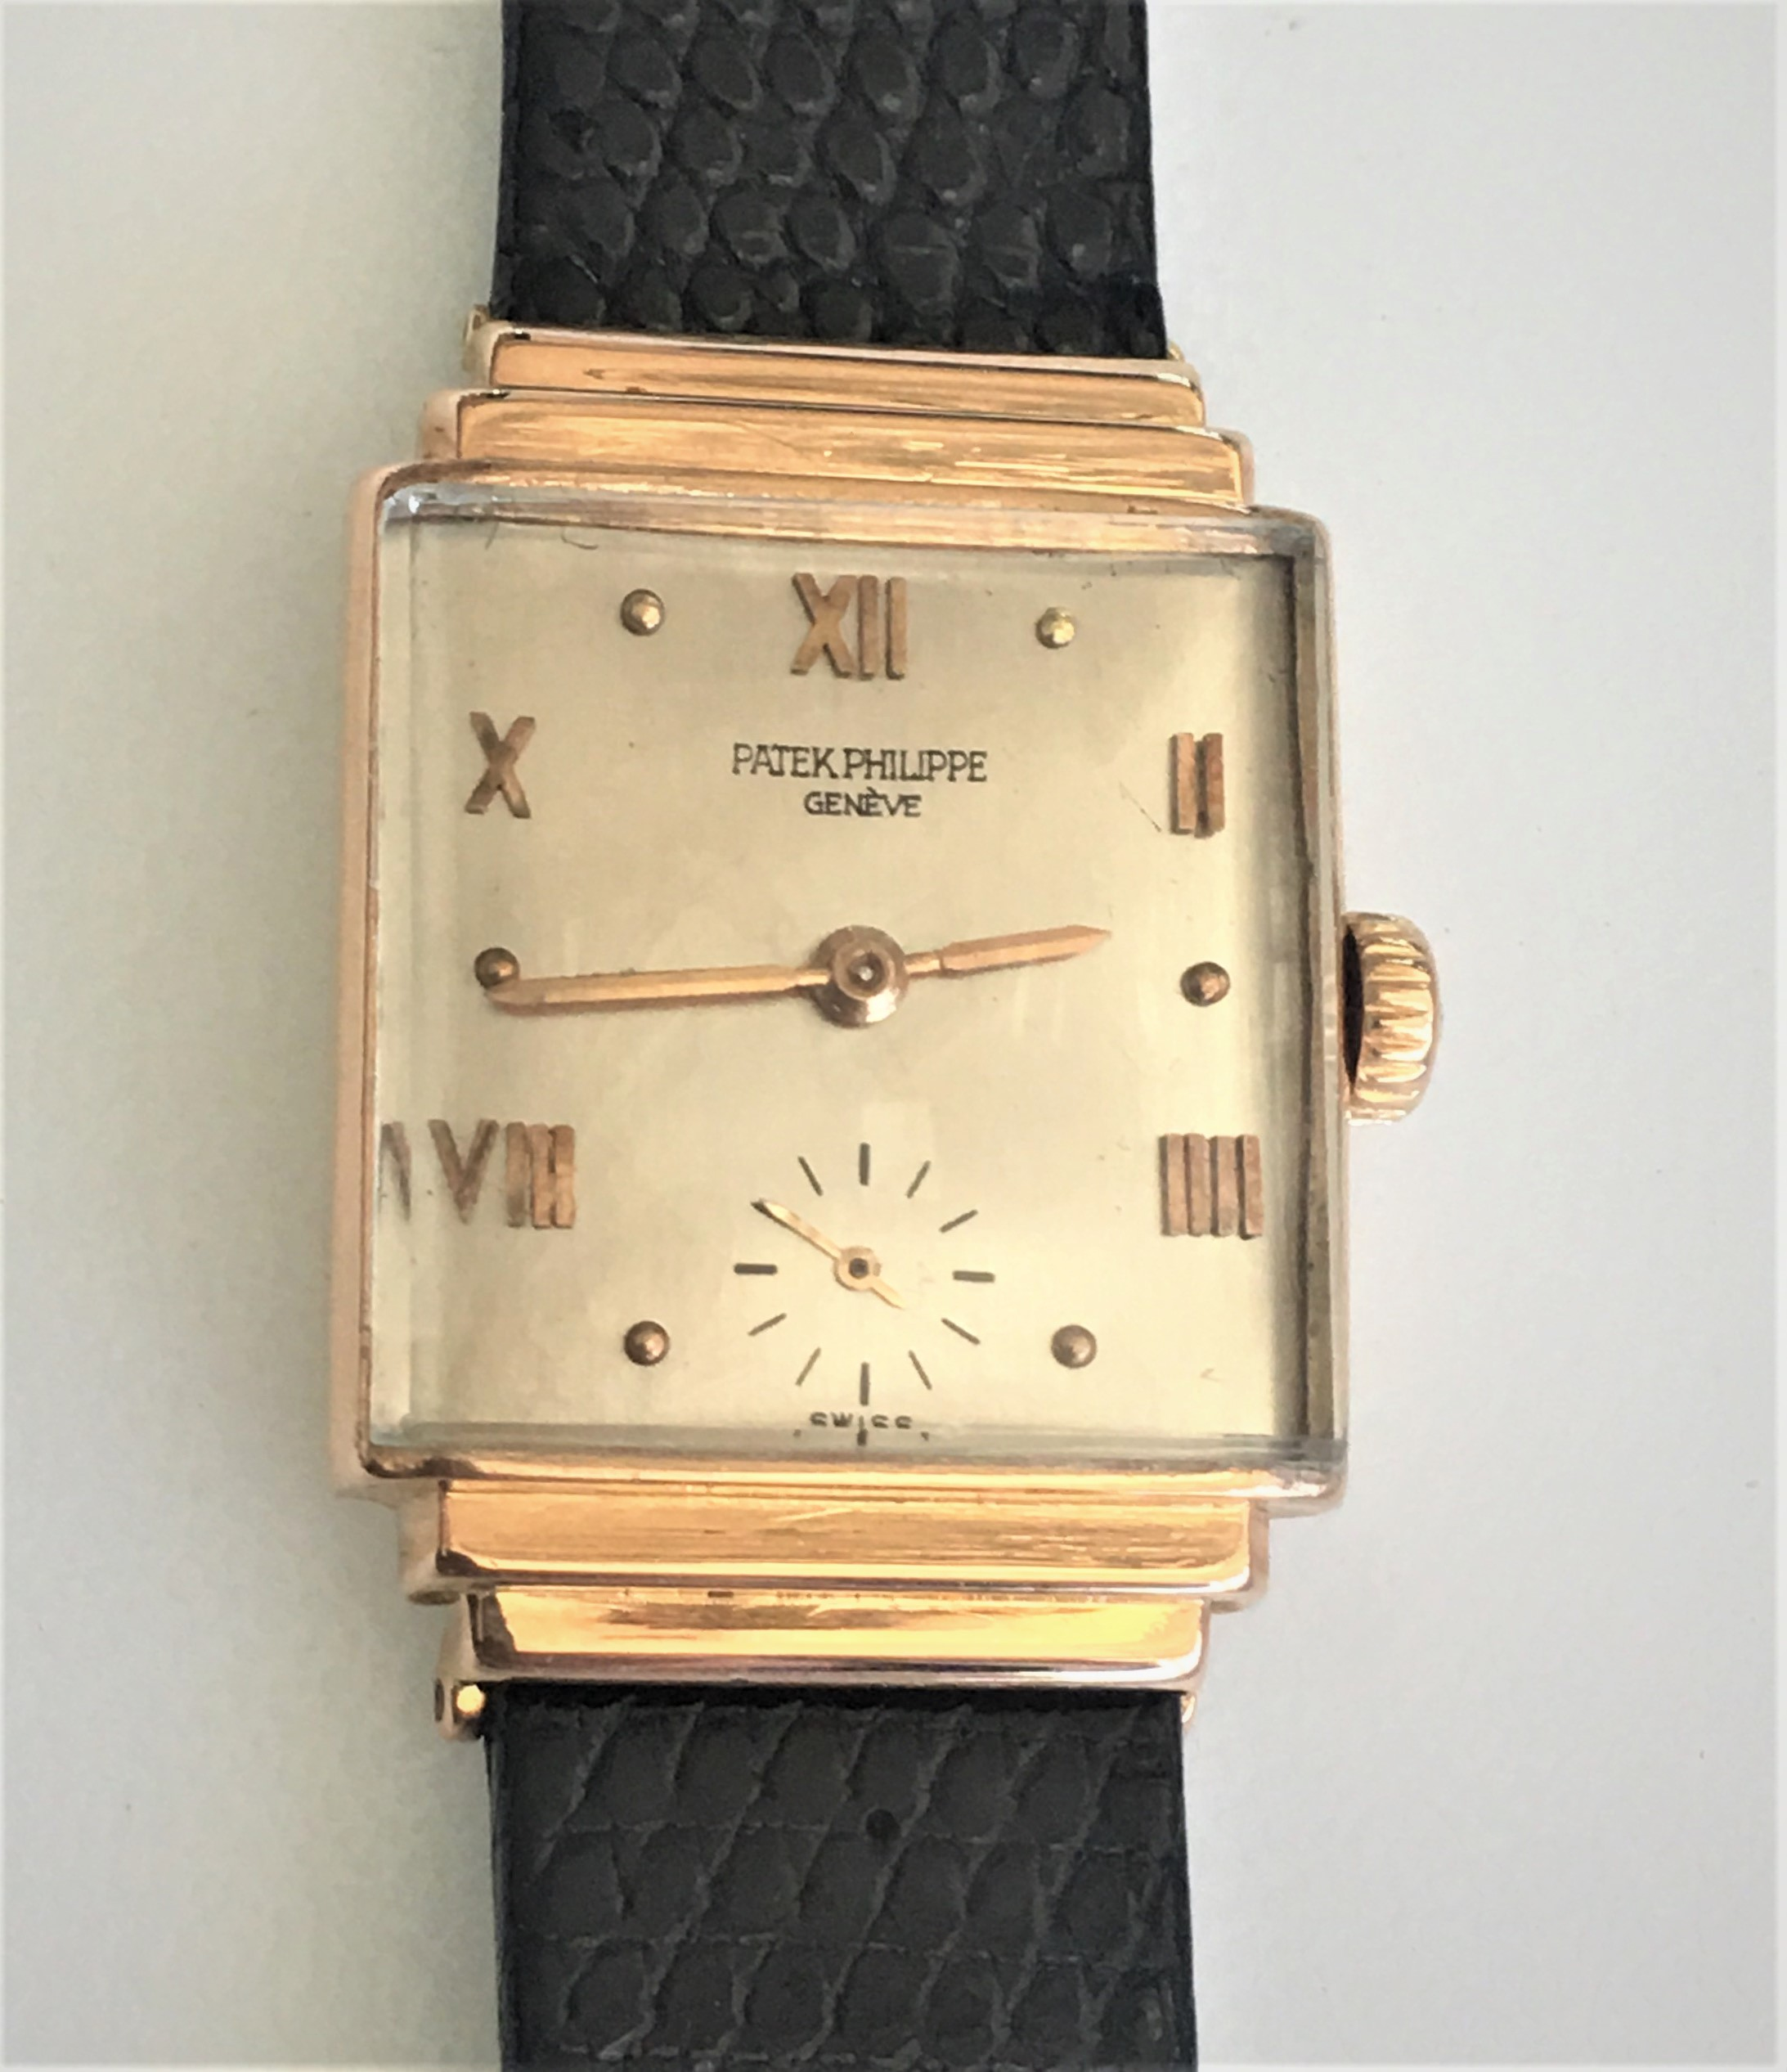 Watch Patek Philippe Geneve Gold . Tampa Jewelry Store Watch Repair